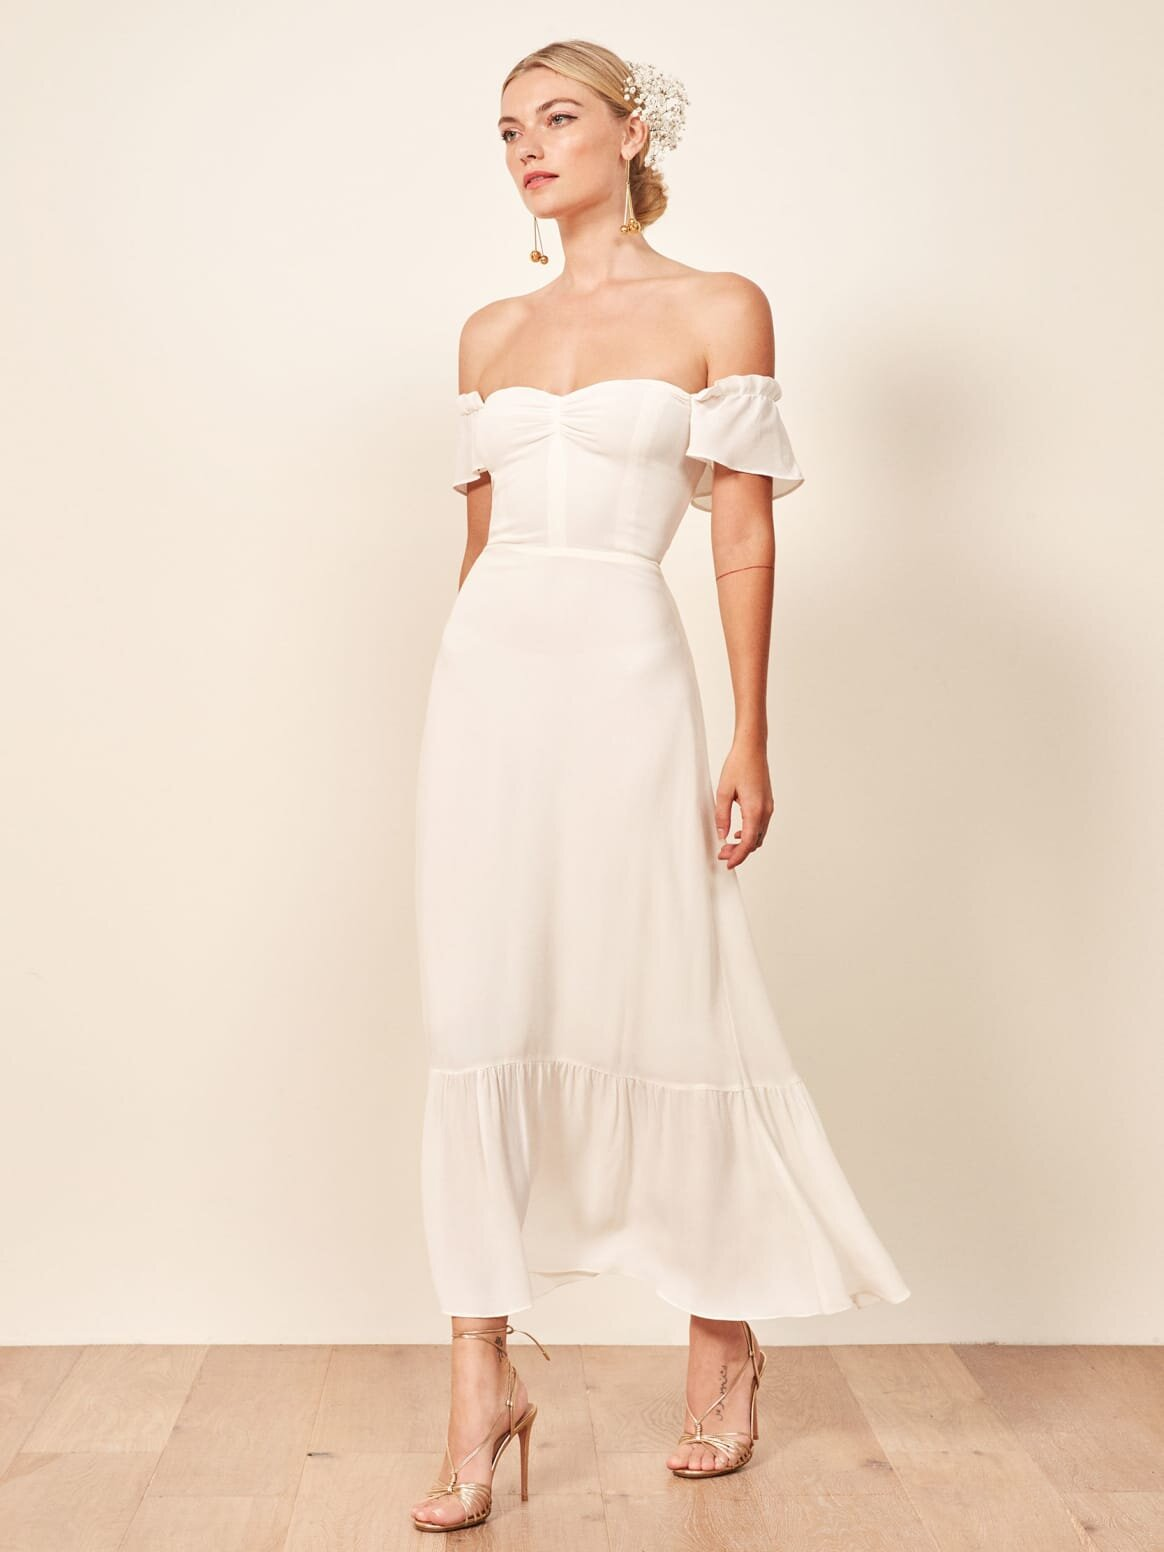 The Best Elopement Wedding Dresses for 20 — Indianapolis Wedding ...